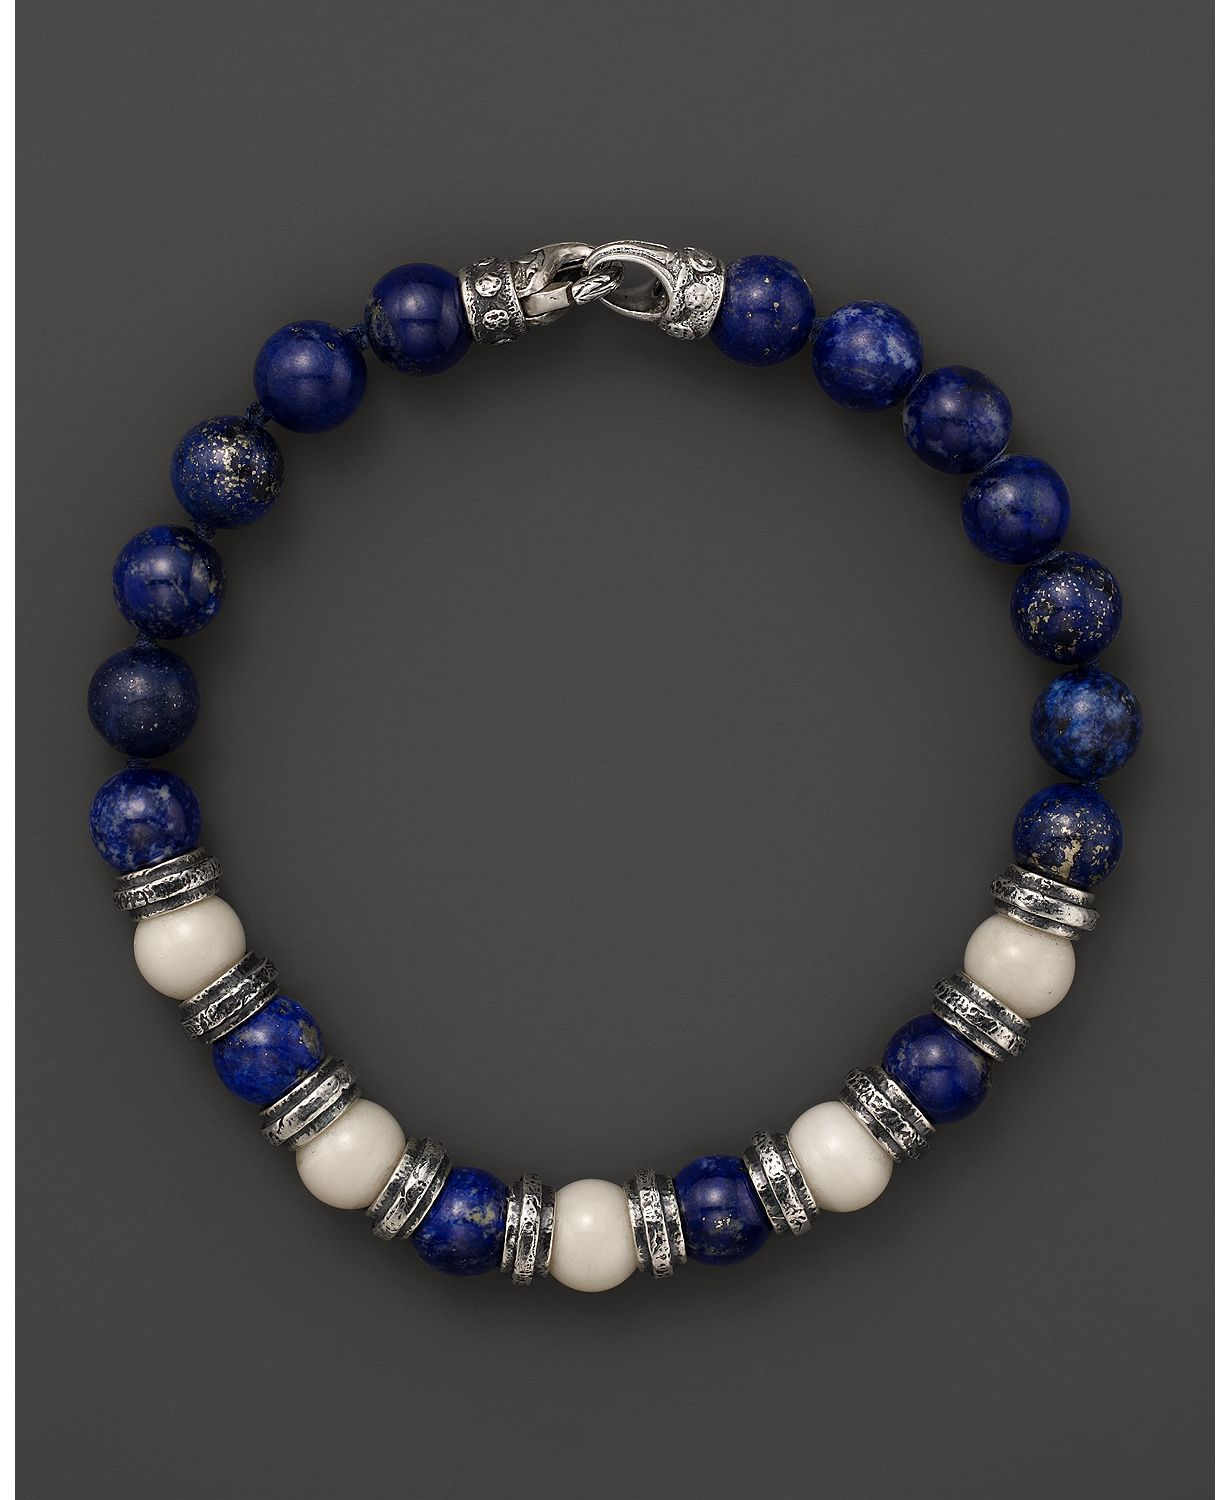 Scott kay bone and lapis beaded bracelet bloomingdalesus